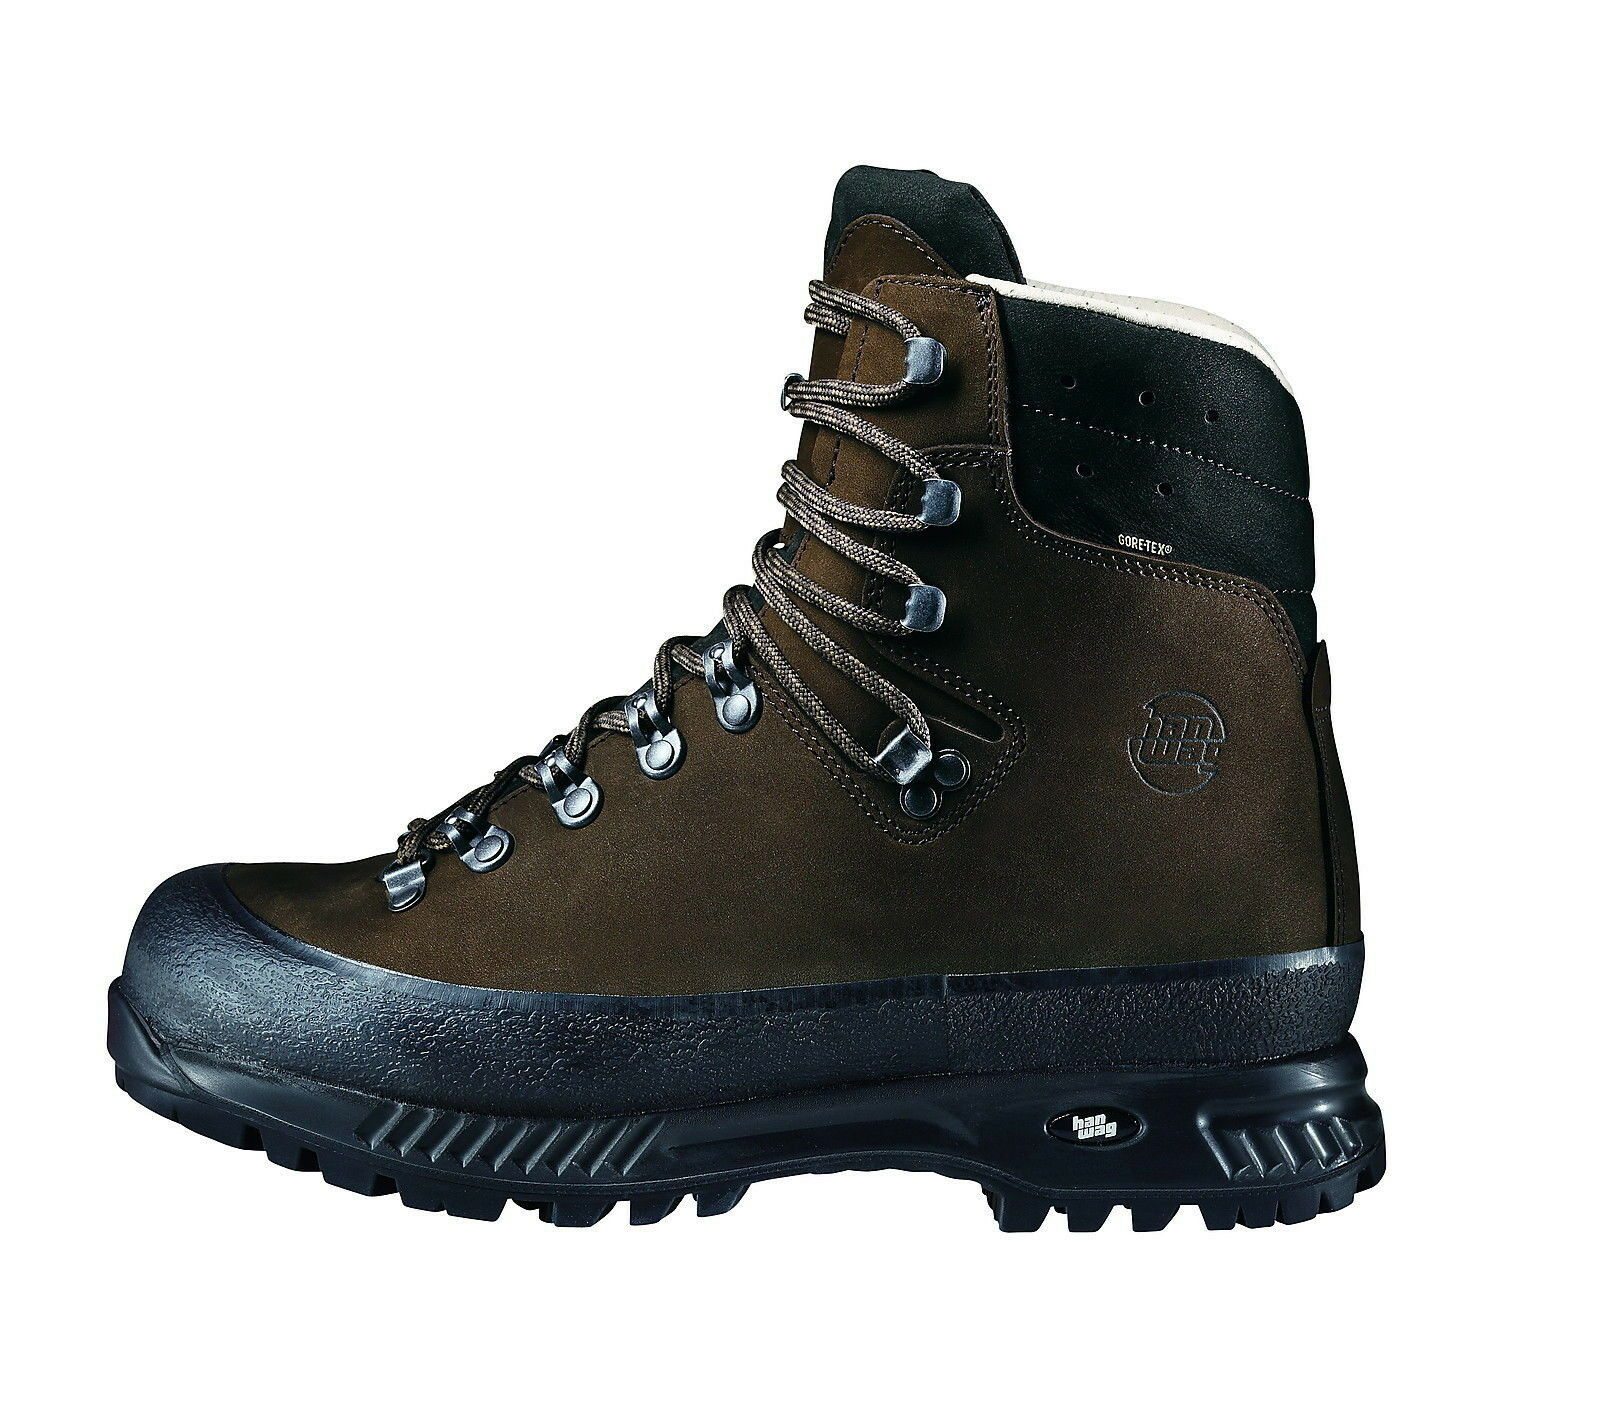 Hanwag Mountain  shoes  Alaska GTX Men Size 10,5 - 45 Earth  save 60% discount and fast shipping worldwide